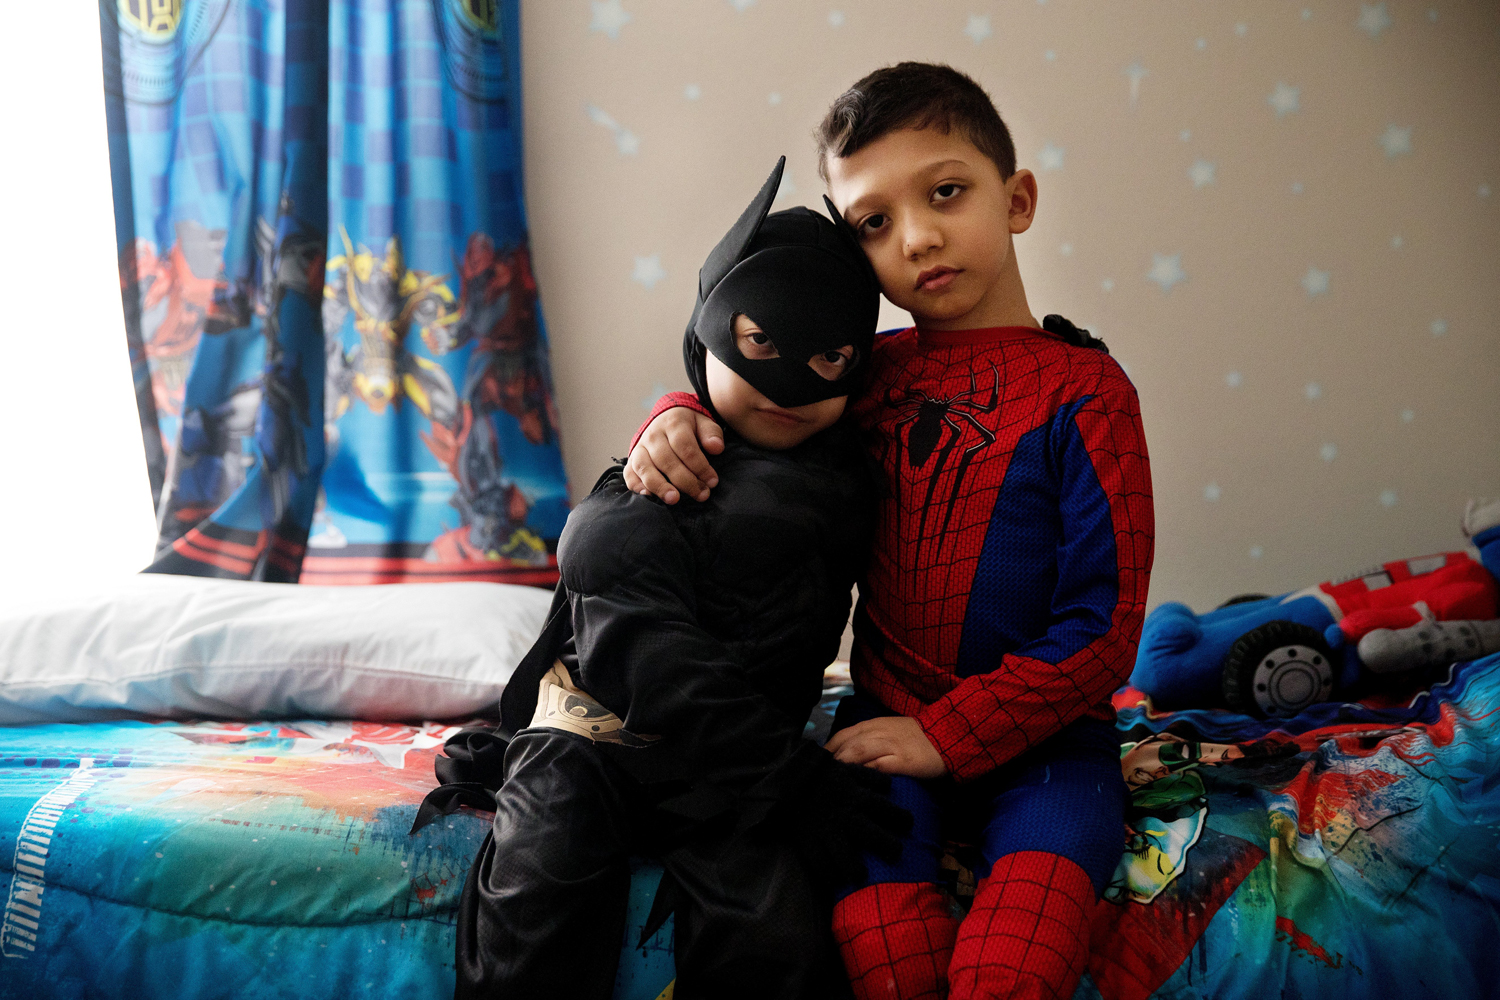 Jahan Adam, 6, left, and Arshaan Adam, 8, pose for a portrait in their favorite superhero costumes. The brothers have an extremely rare disease called Jansen's metaphyseal chondrodysplasia, which affects the bones and is caused by a genetic mutation. Though not terminal, the diagnosis means chronic pain and multiple surgeries to straighten weak bones. The disease also can lead to kidney problems, caused by the high levels of calcium in the bloodstream